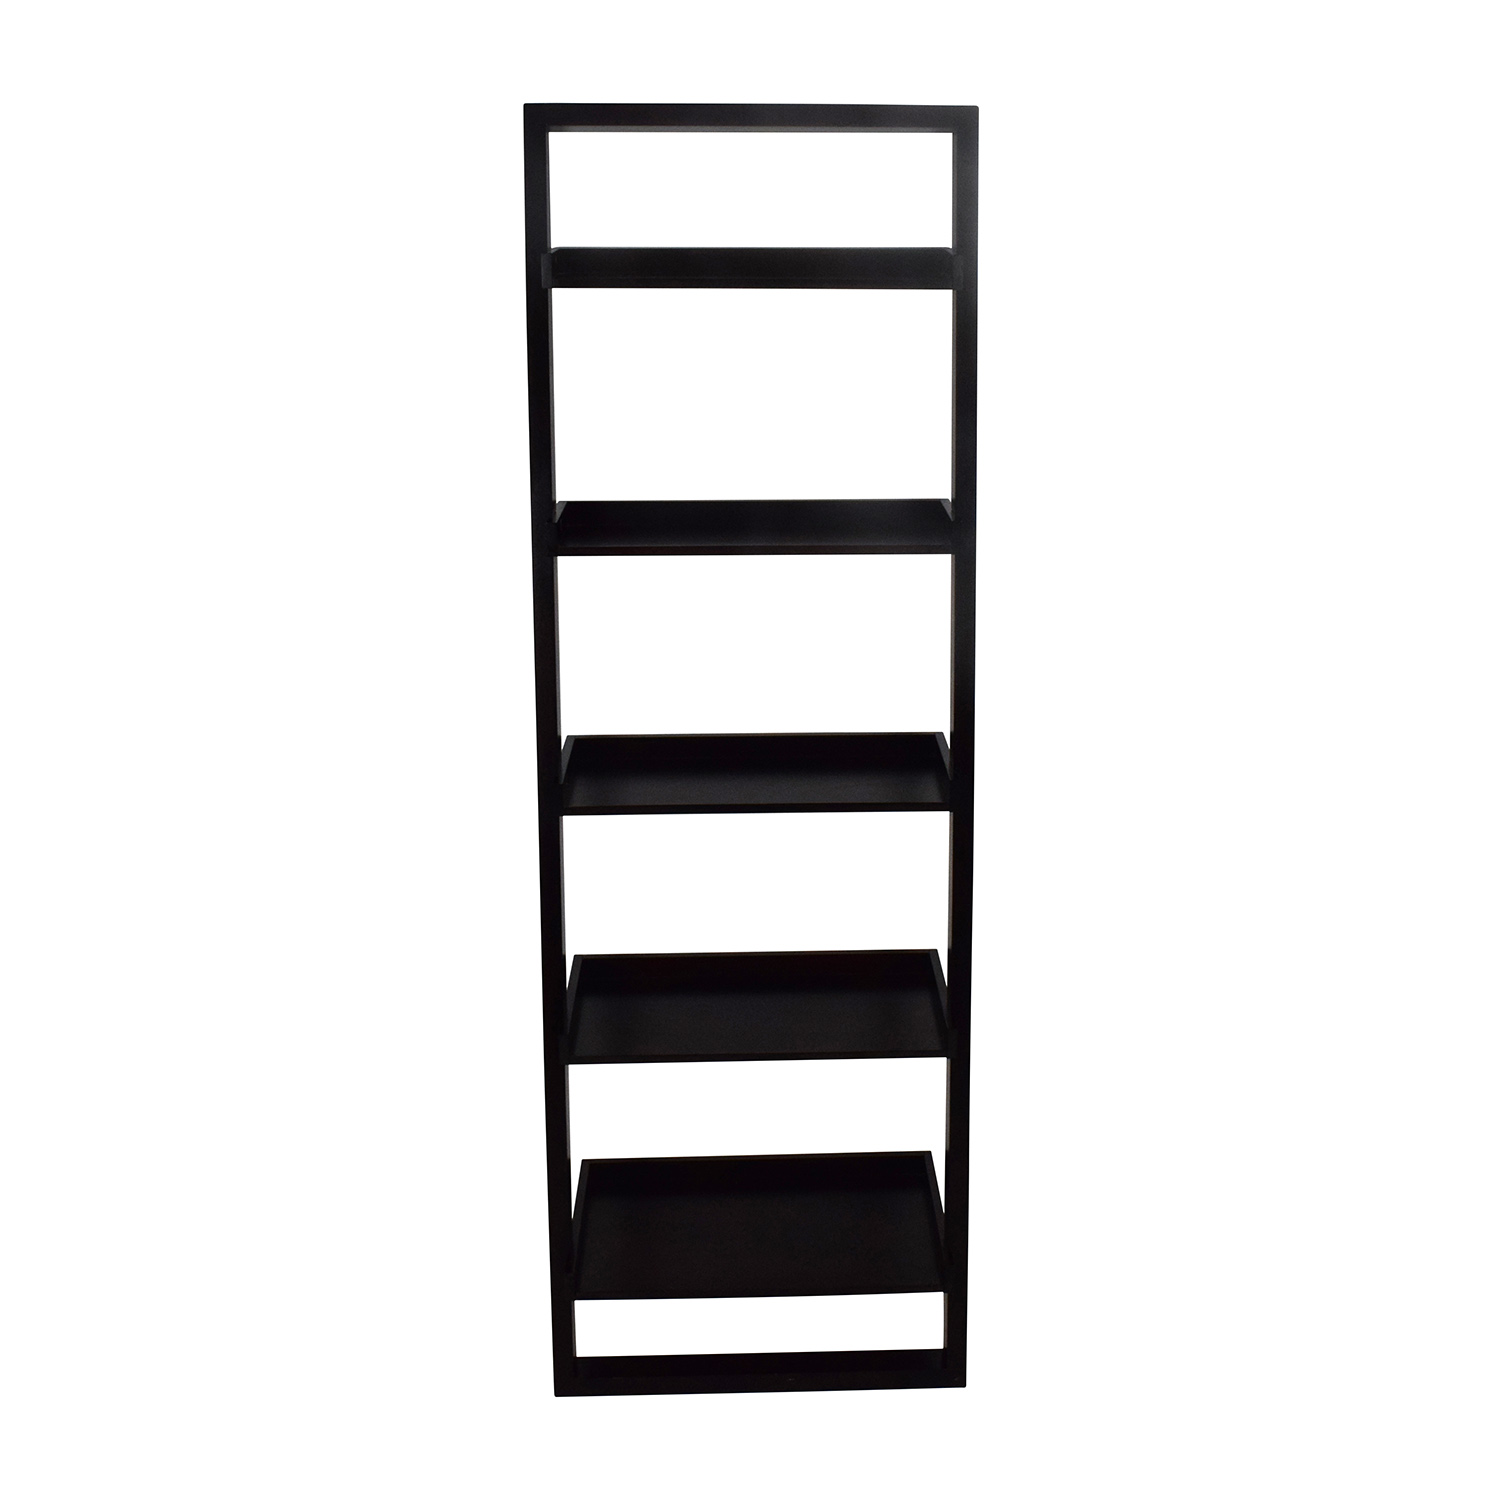 Crate and Barrel Crate & Barrel Sloane Leaning Bookcase nyc